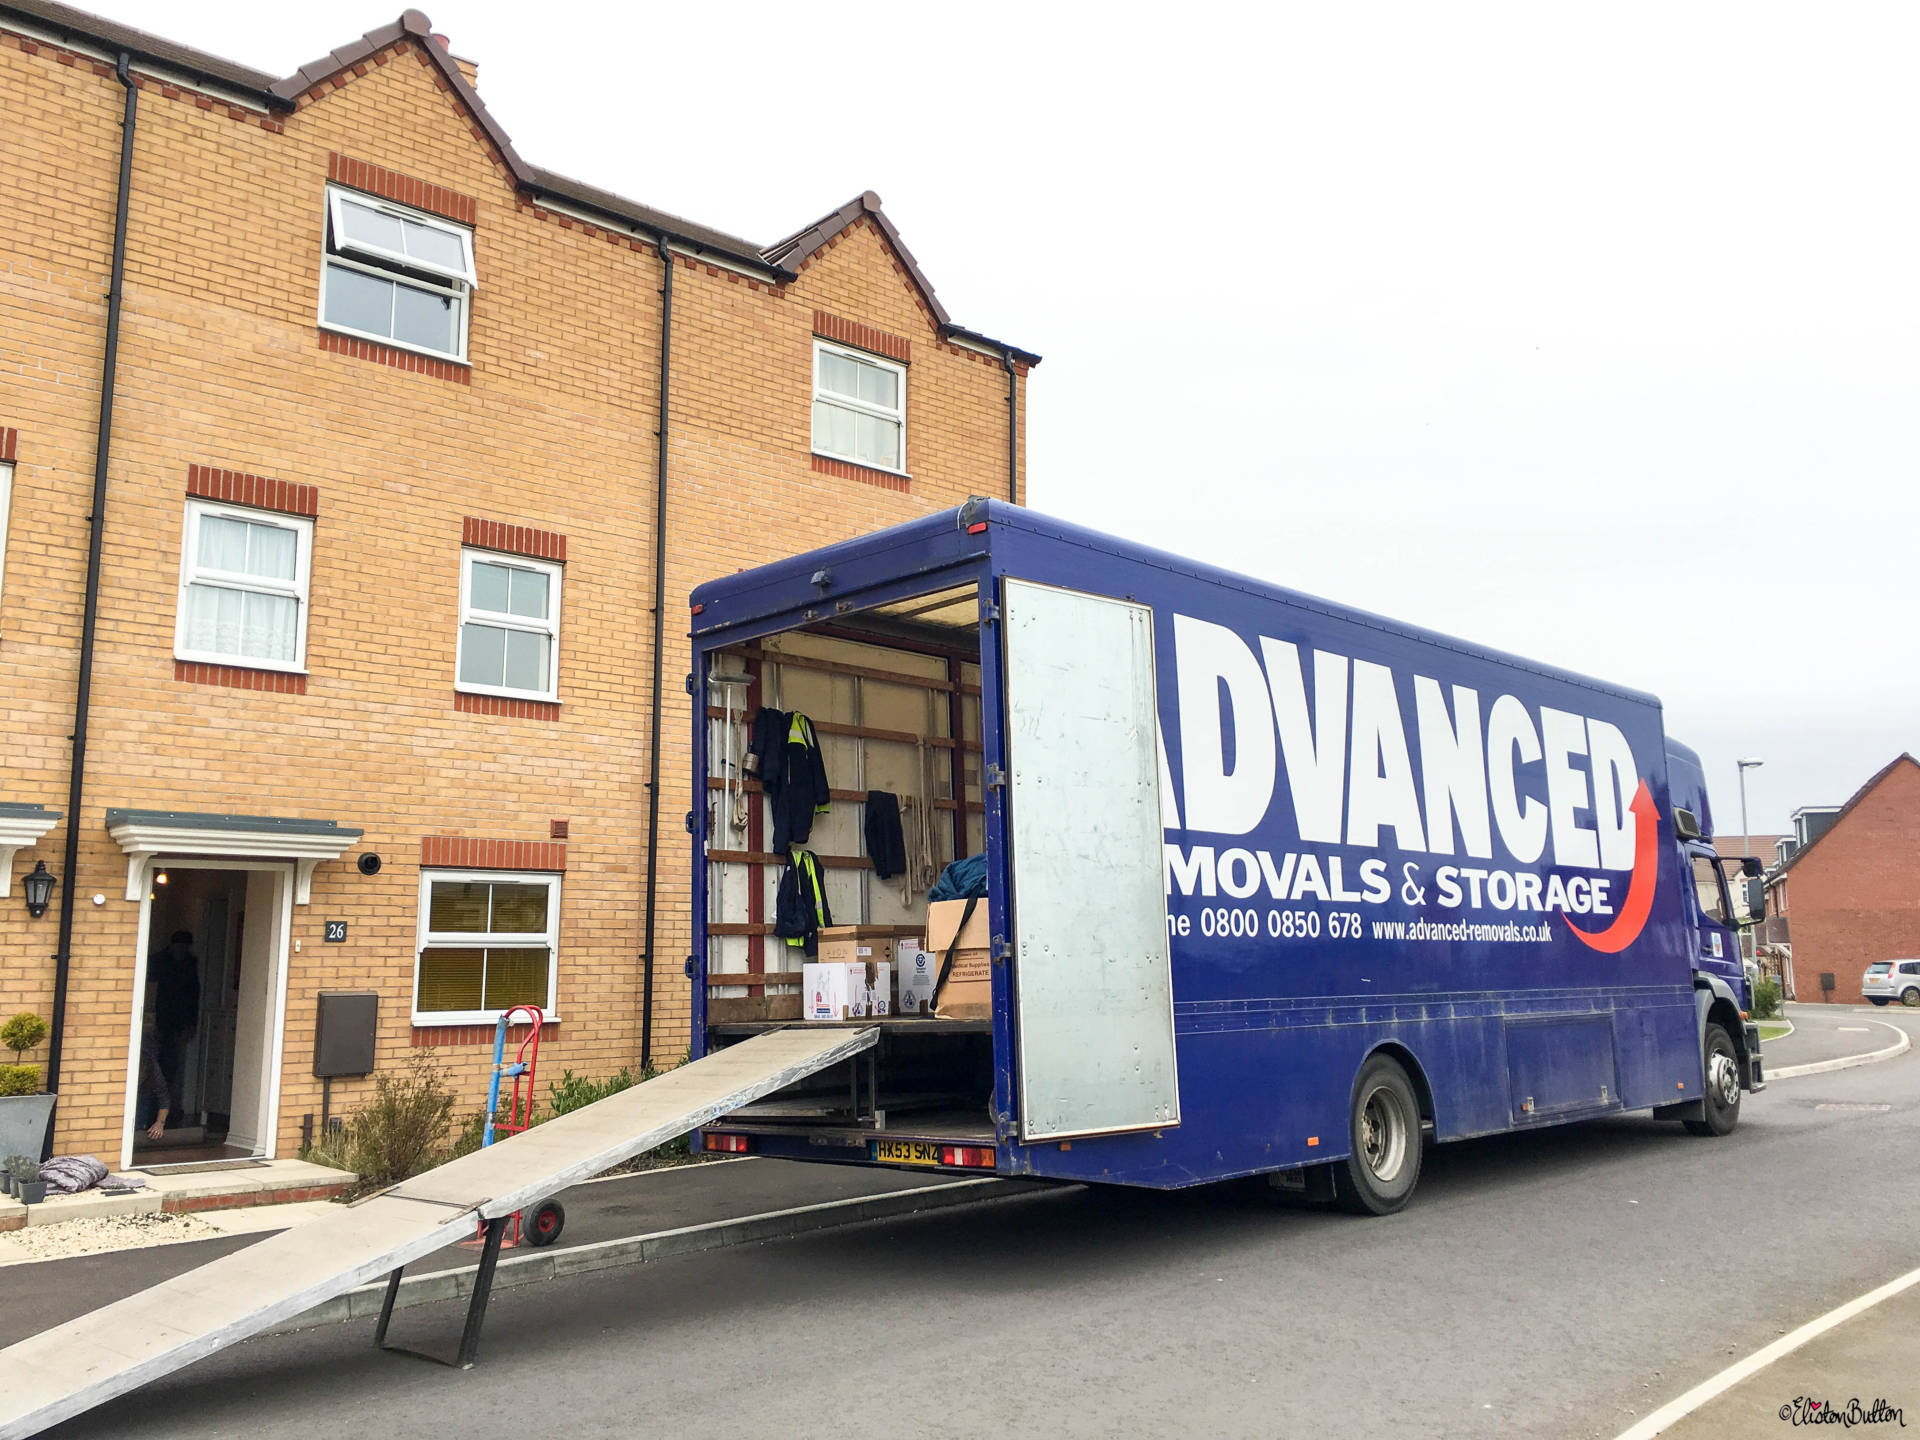 Removal Lorry Starting to be Filled Ready for the Move - 10 Top Tips for...Moving House at www.elistonbutton.com - Eliston Button - That Crafty Kid – Art, Design, Craft & Adventure.